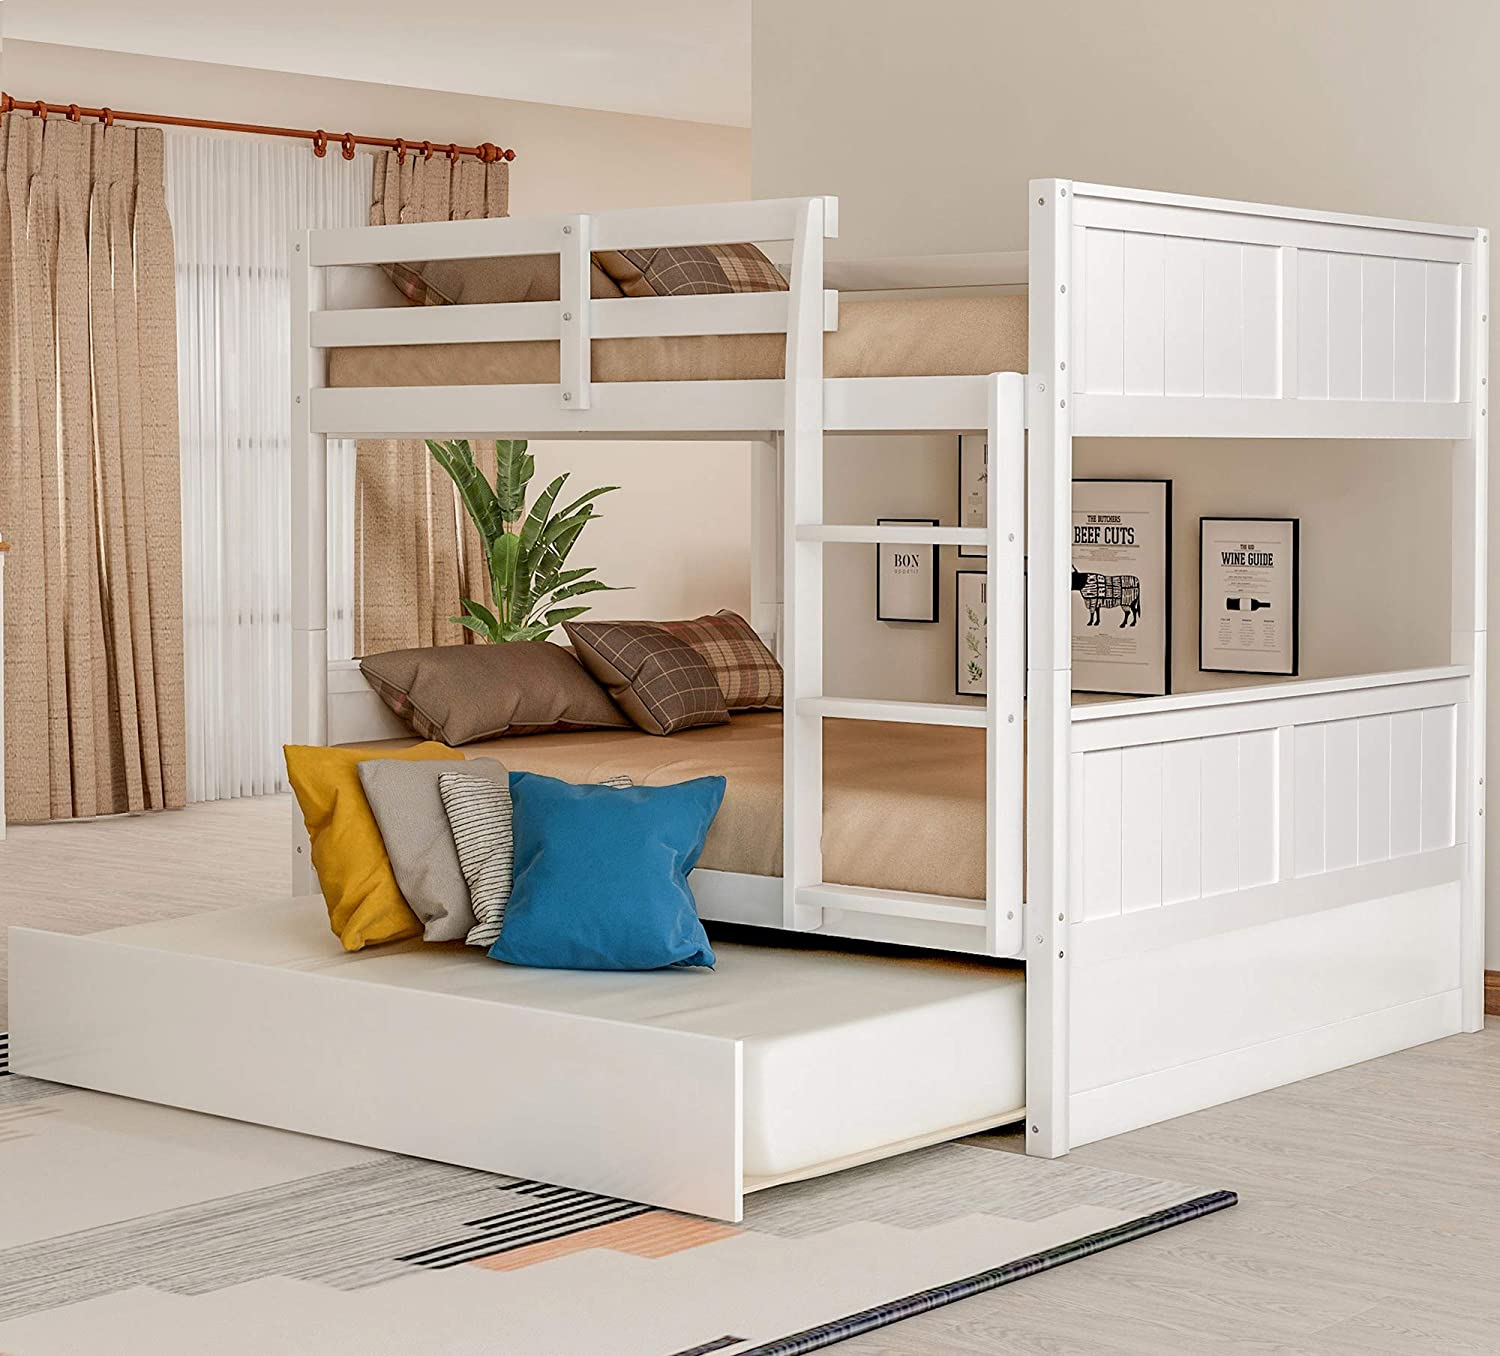 Amazon Com Bunk Bed Full Over Full With Trundle Julyfox 725lb Heavy Duty Full Size Platform Bed Pine Wood With Headboard Foot Board No Box Spring Need Bunk Beds With Ladders Guard Rails Space Saving White Kitchen Dining